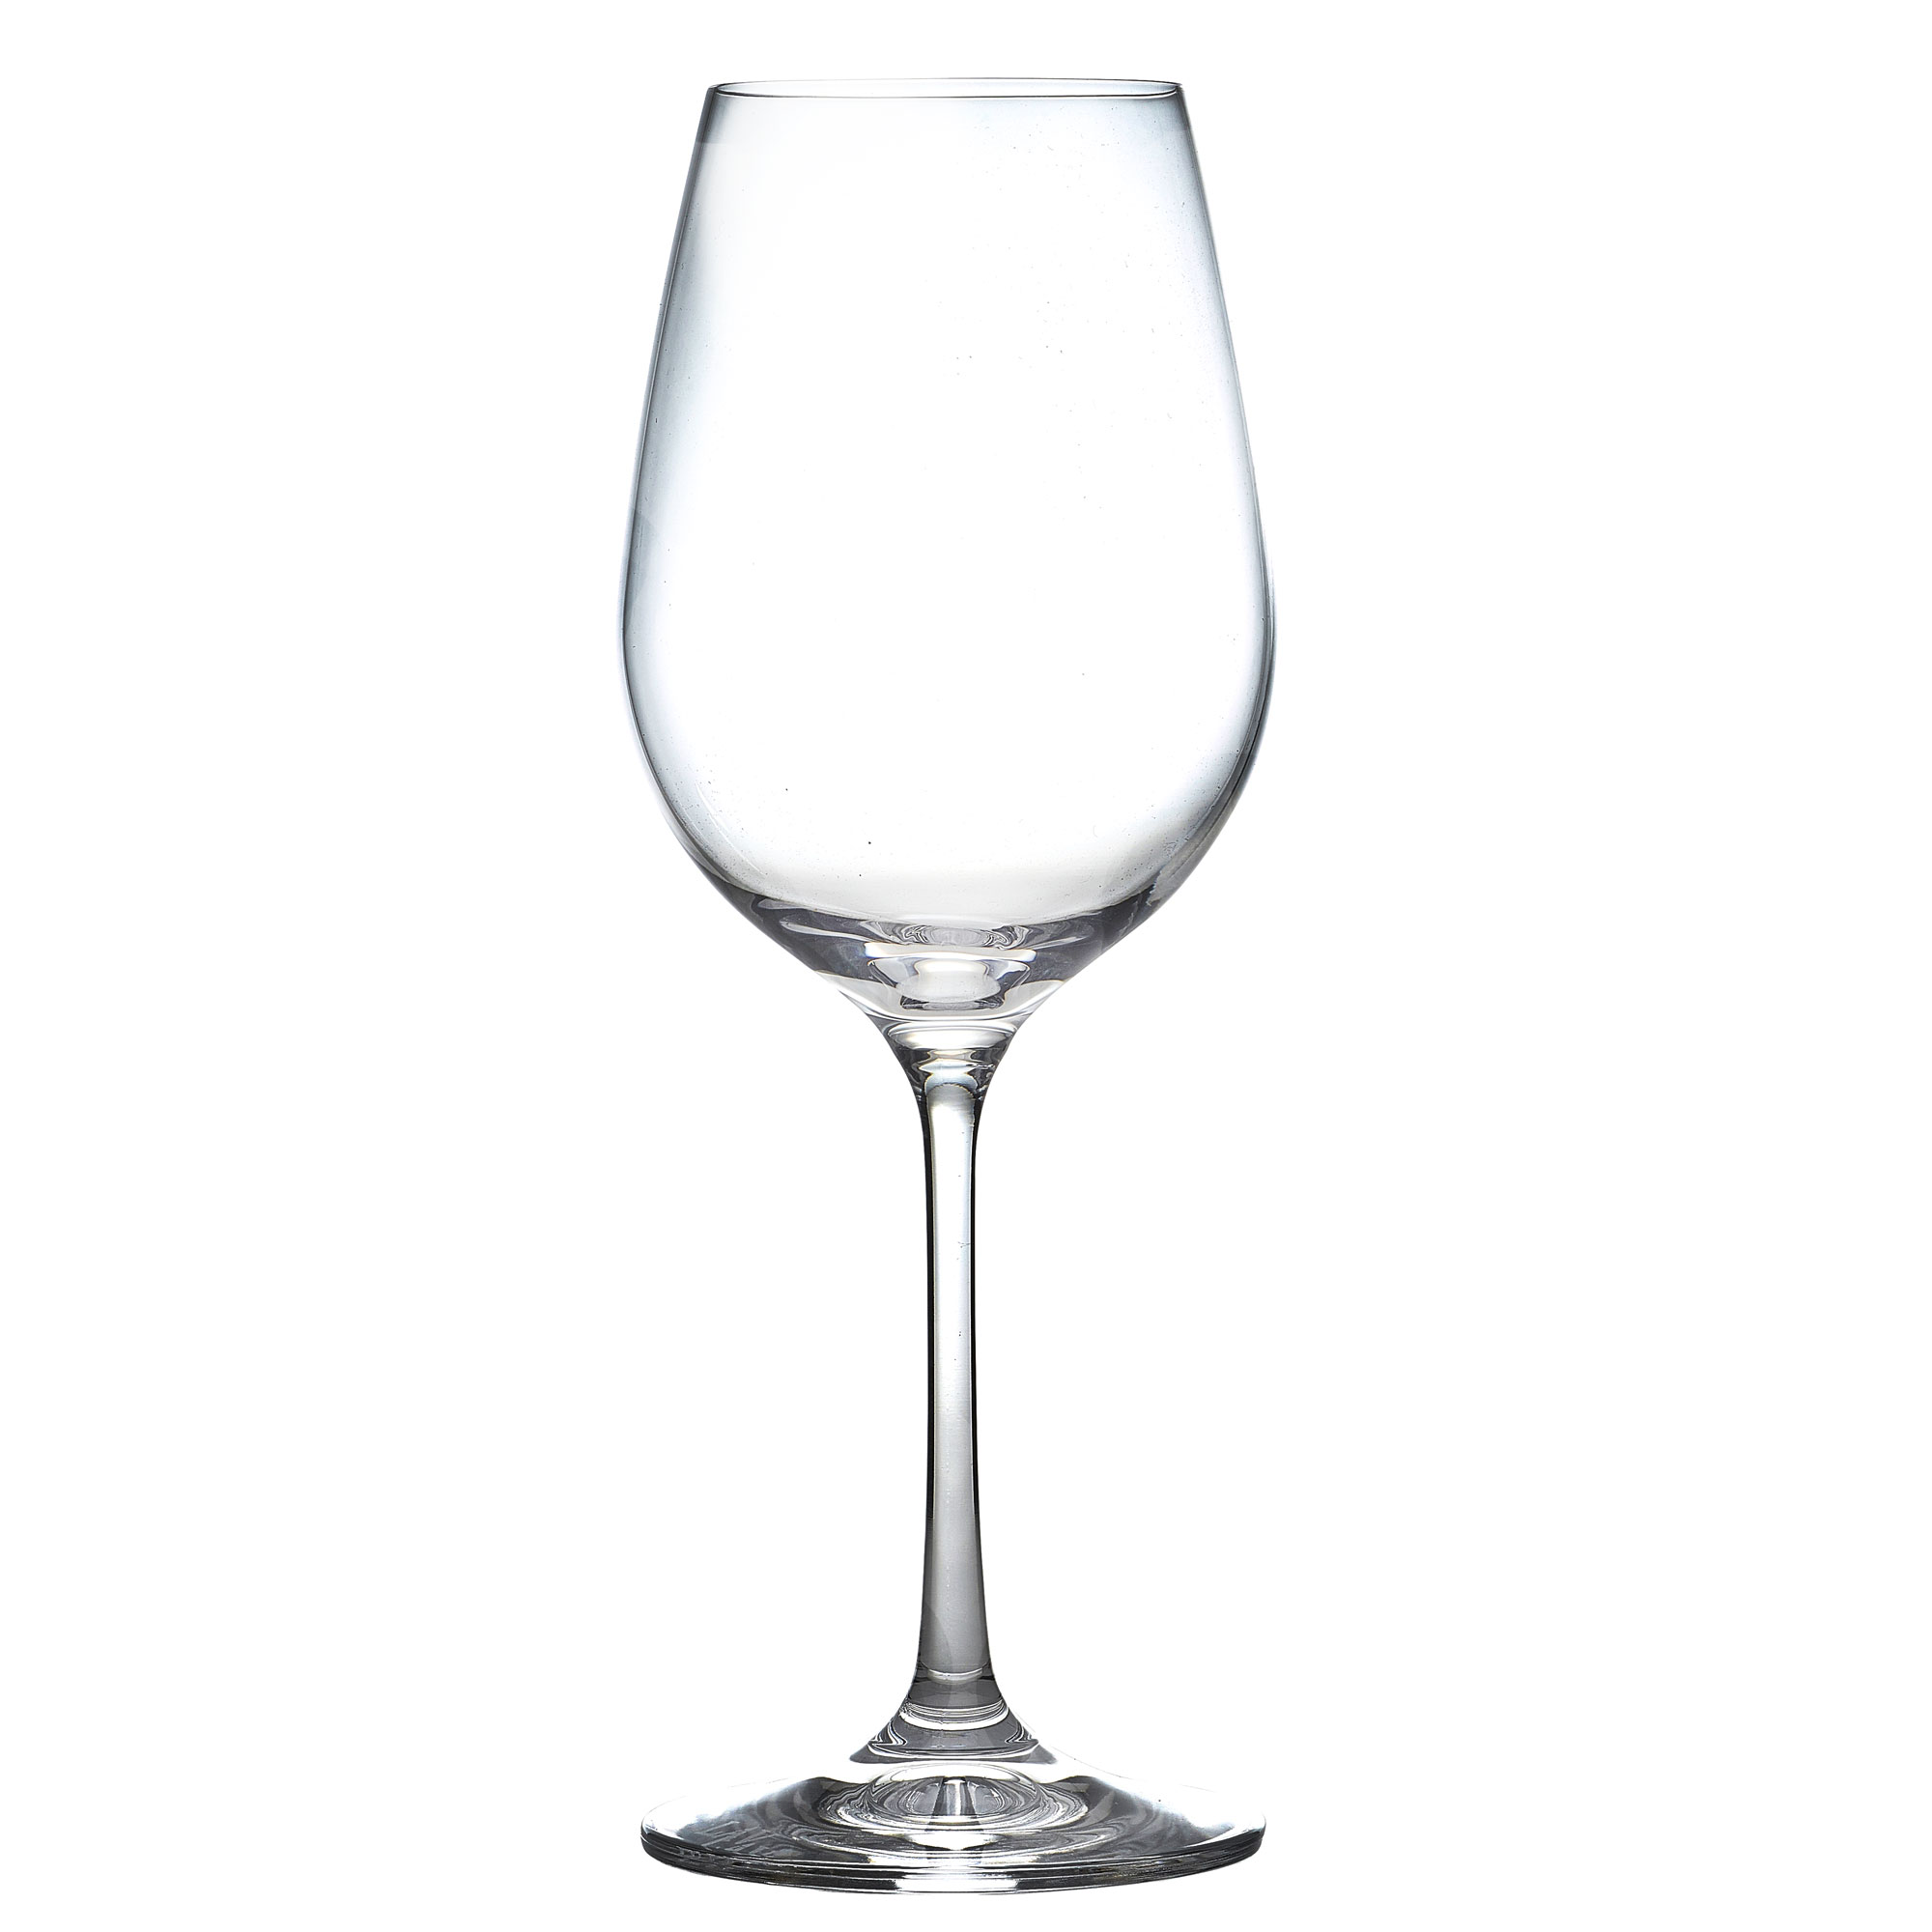 Gusto Wine Glasses 12.25oz / 350ml